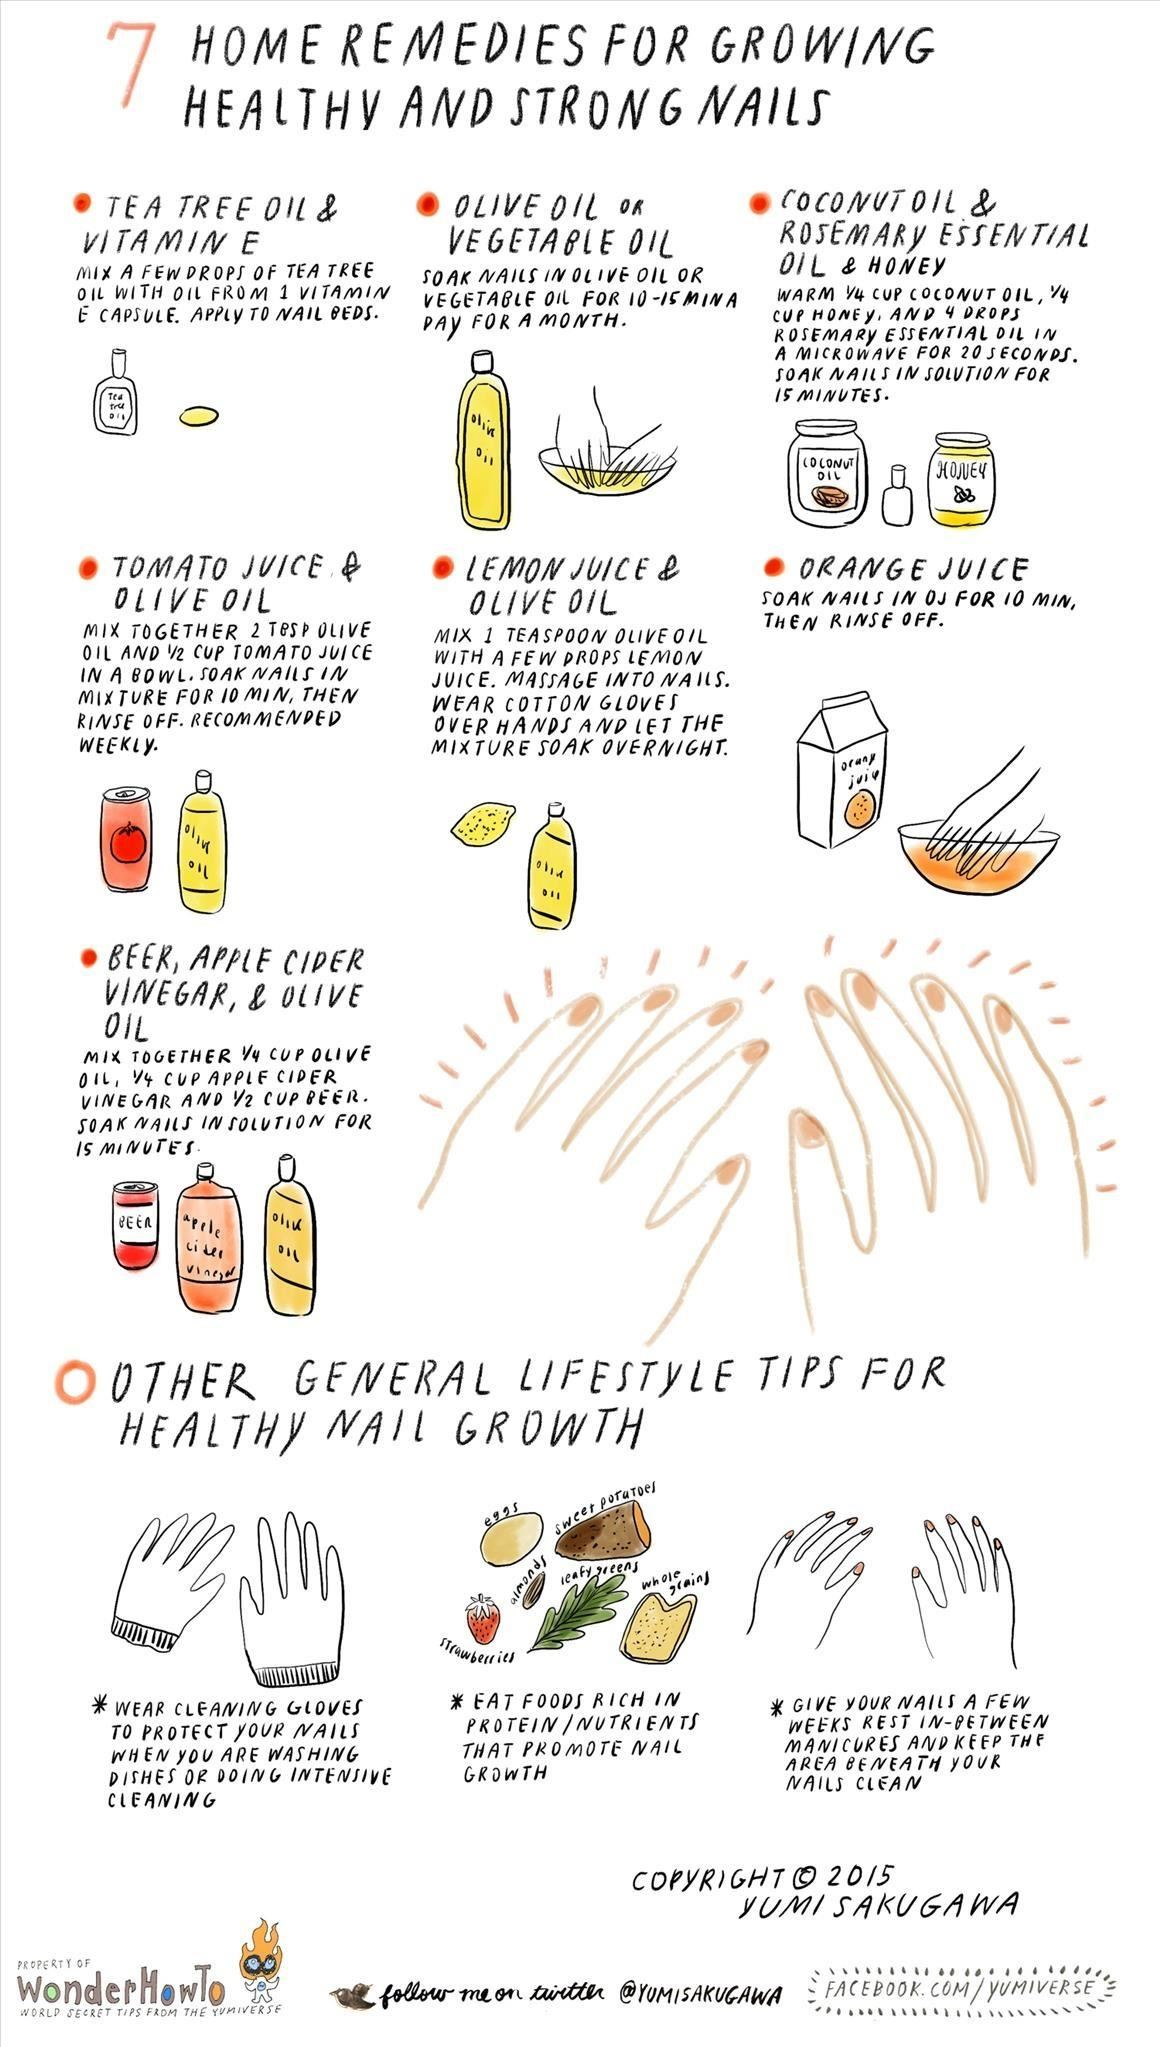 7 Home Remedies For Growing Healthy Strong Nails The